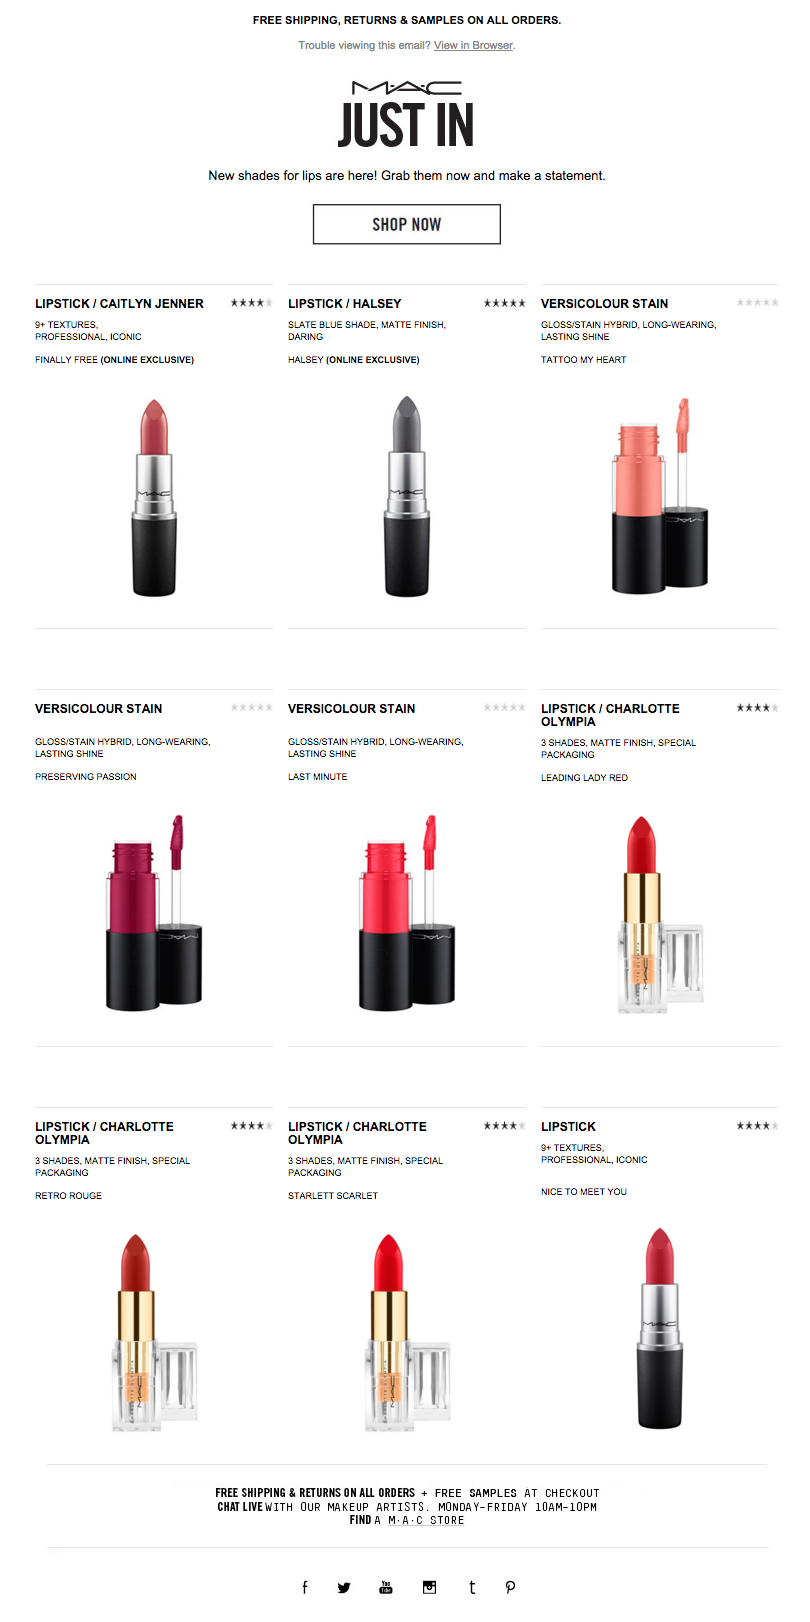 Free mac makeup samples without surveys style guru Fashion style questionnaire sample